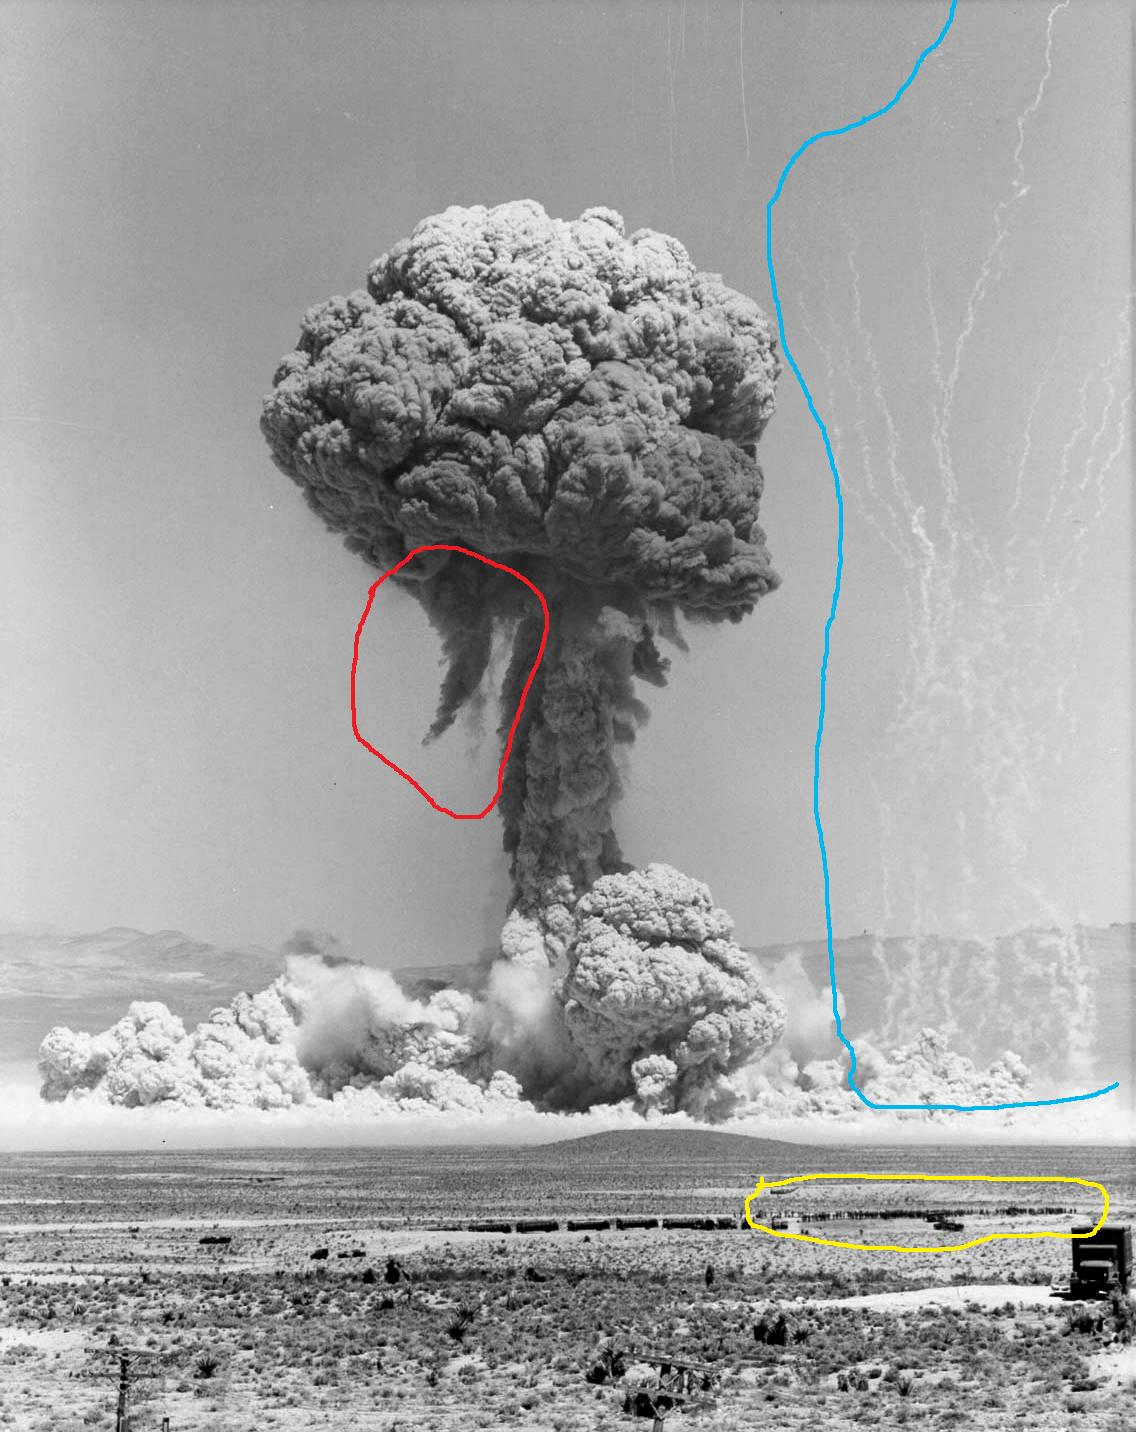 atomic bombs should not be used to solve conflicts